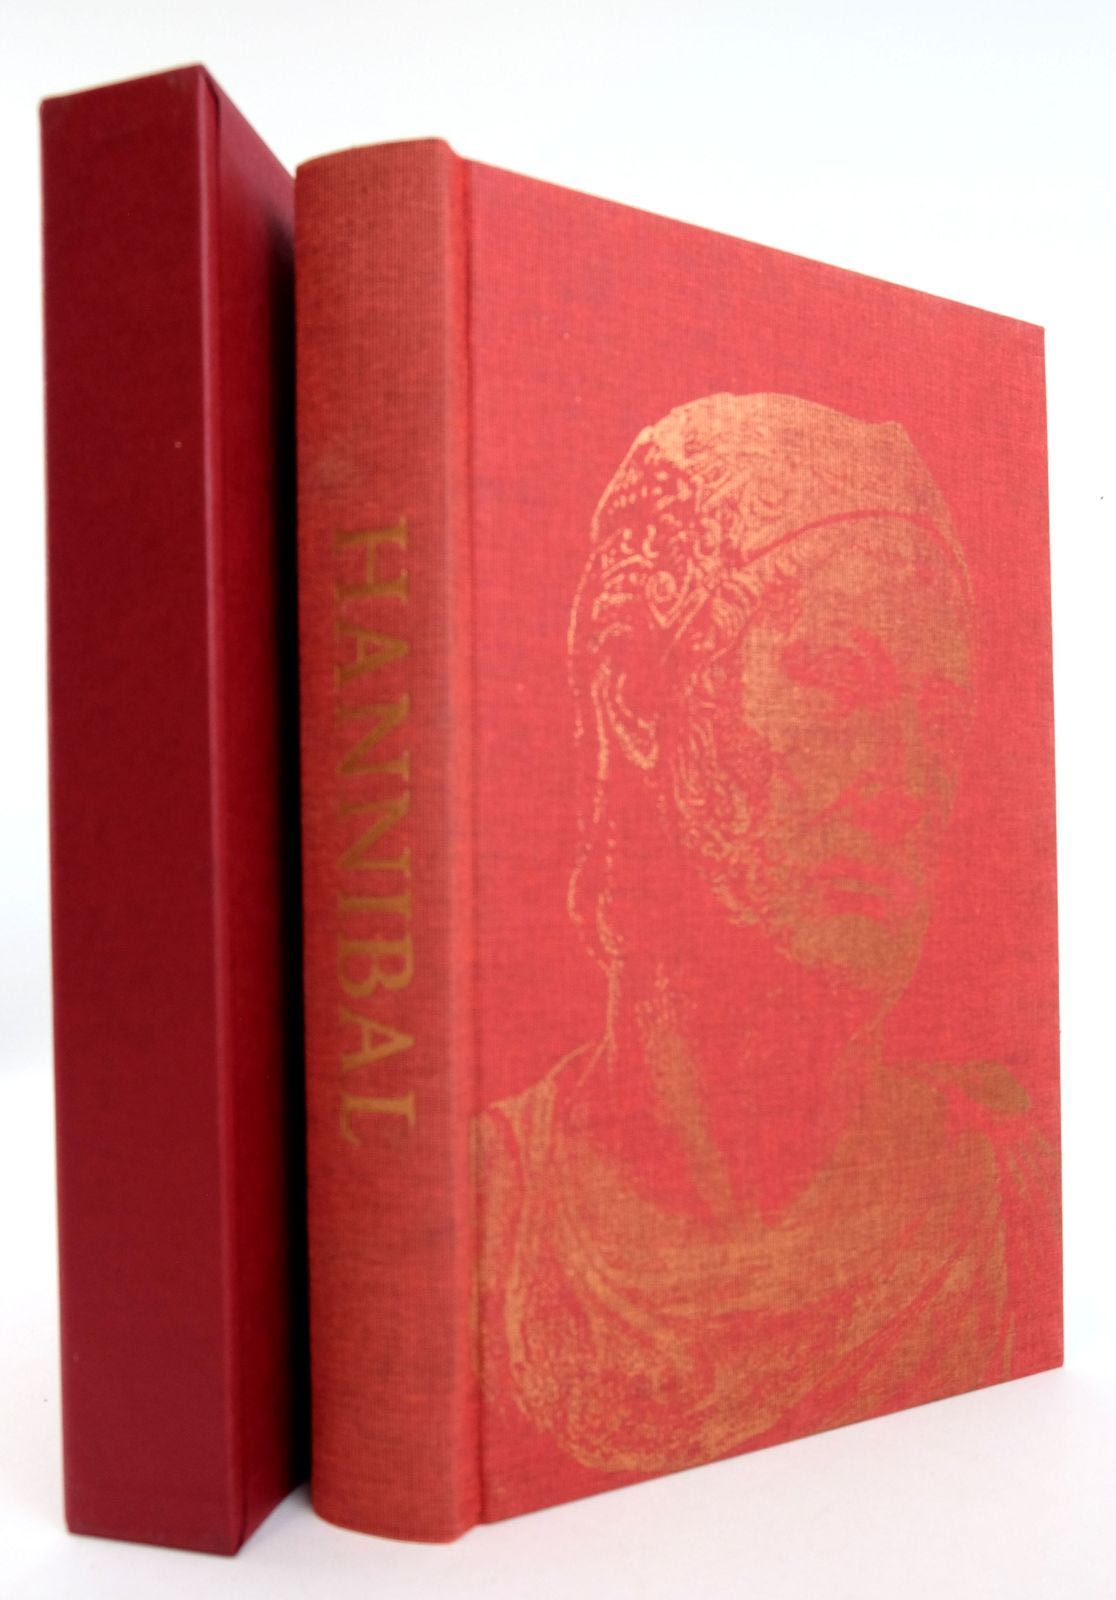 Photo of HANNIBAL written by Bradford, Ernle published by Folio Society (STOCK CODE: 1819048)  for sale by Stella & Rose's Books